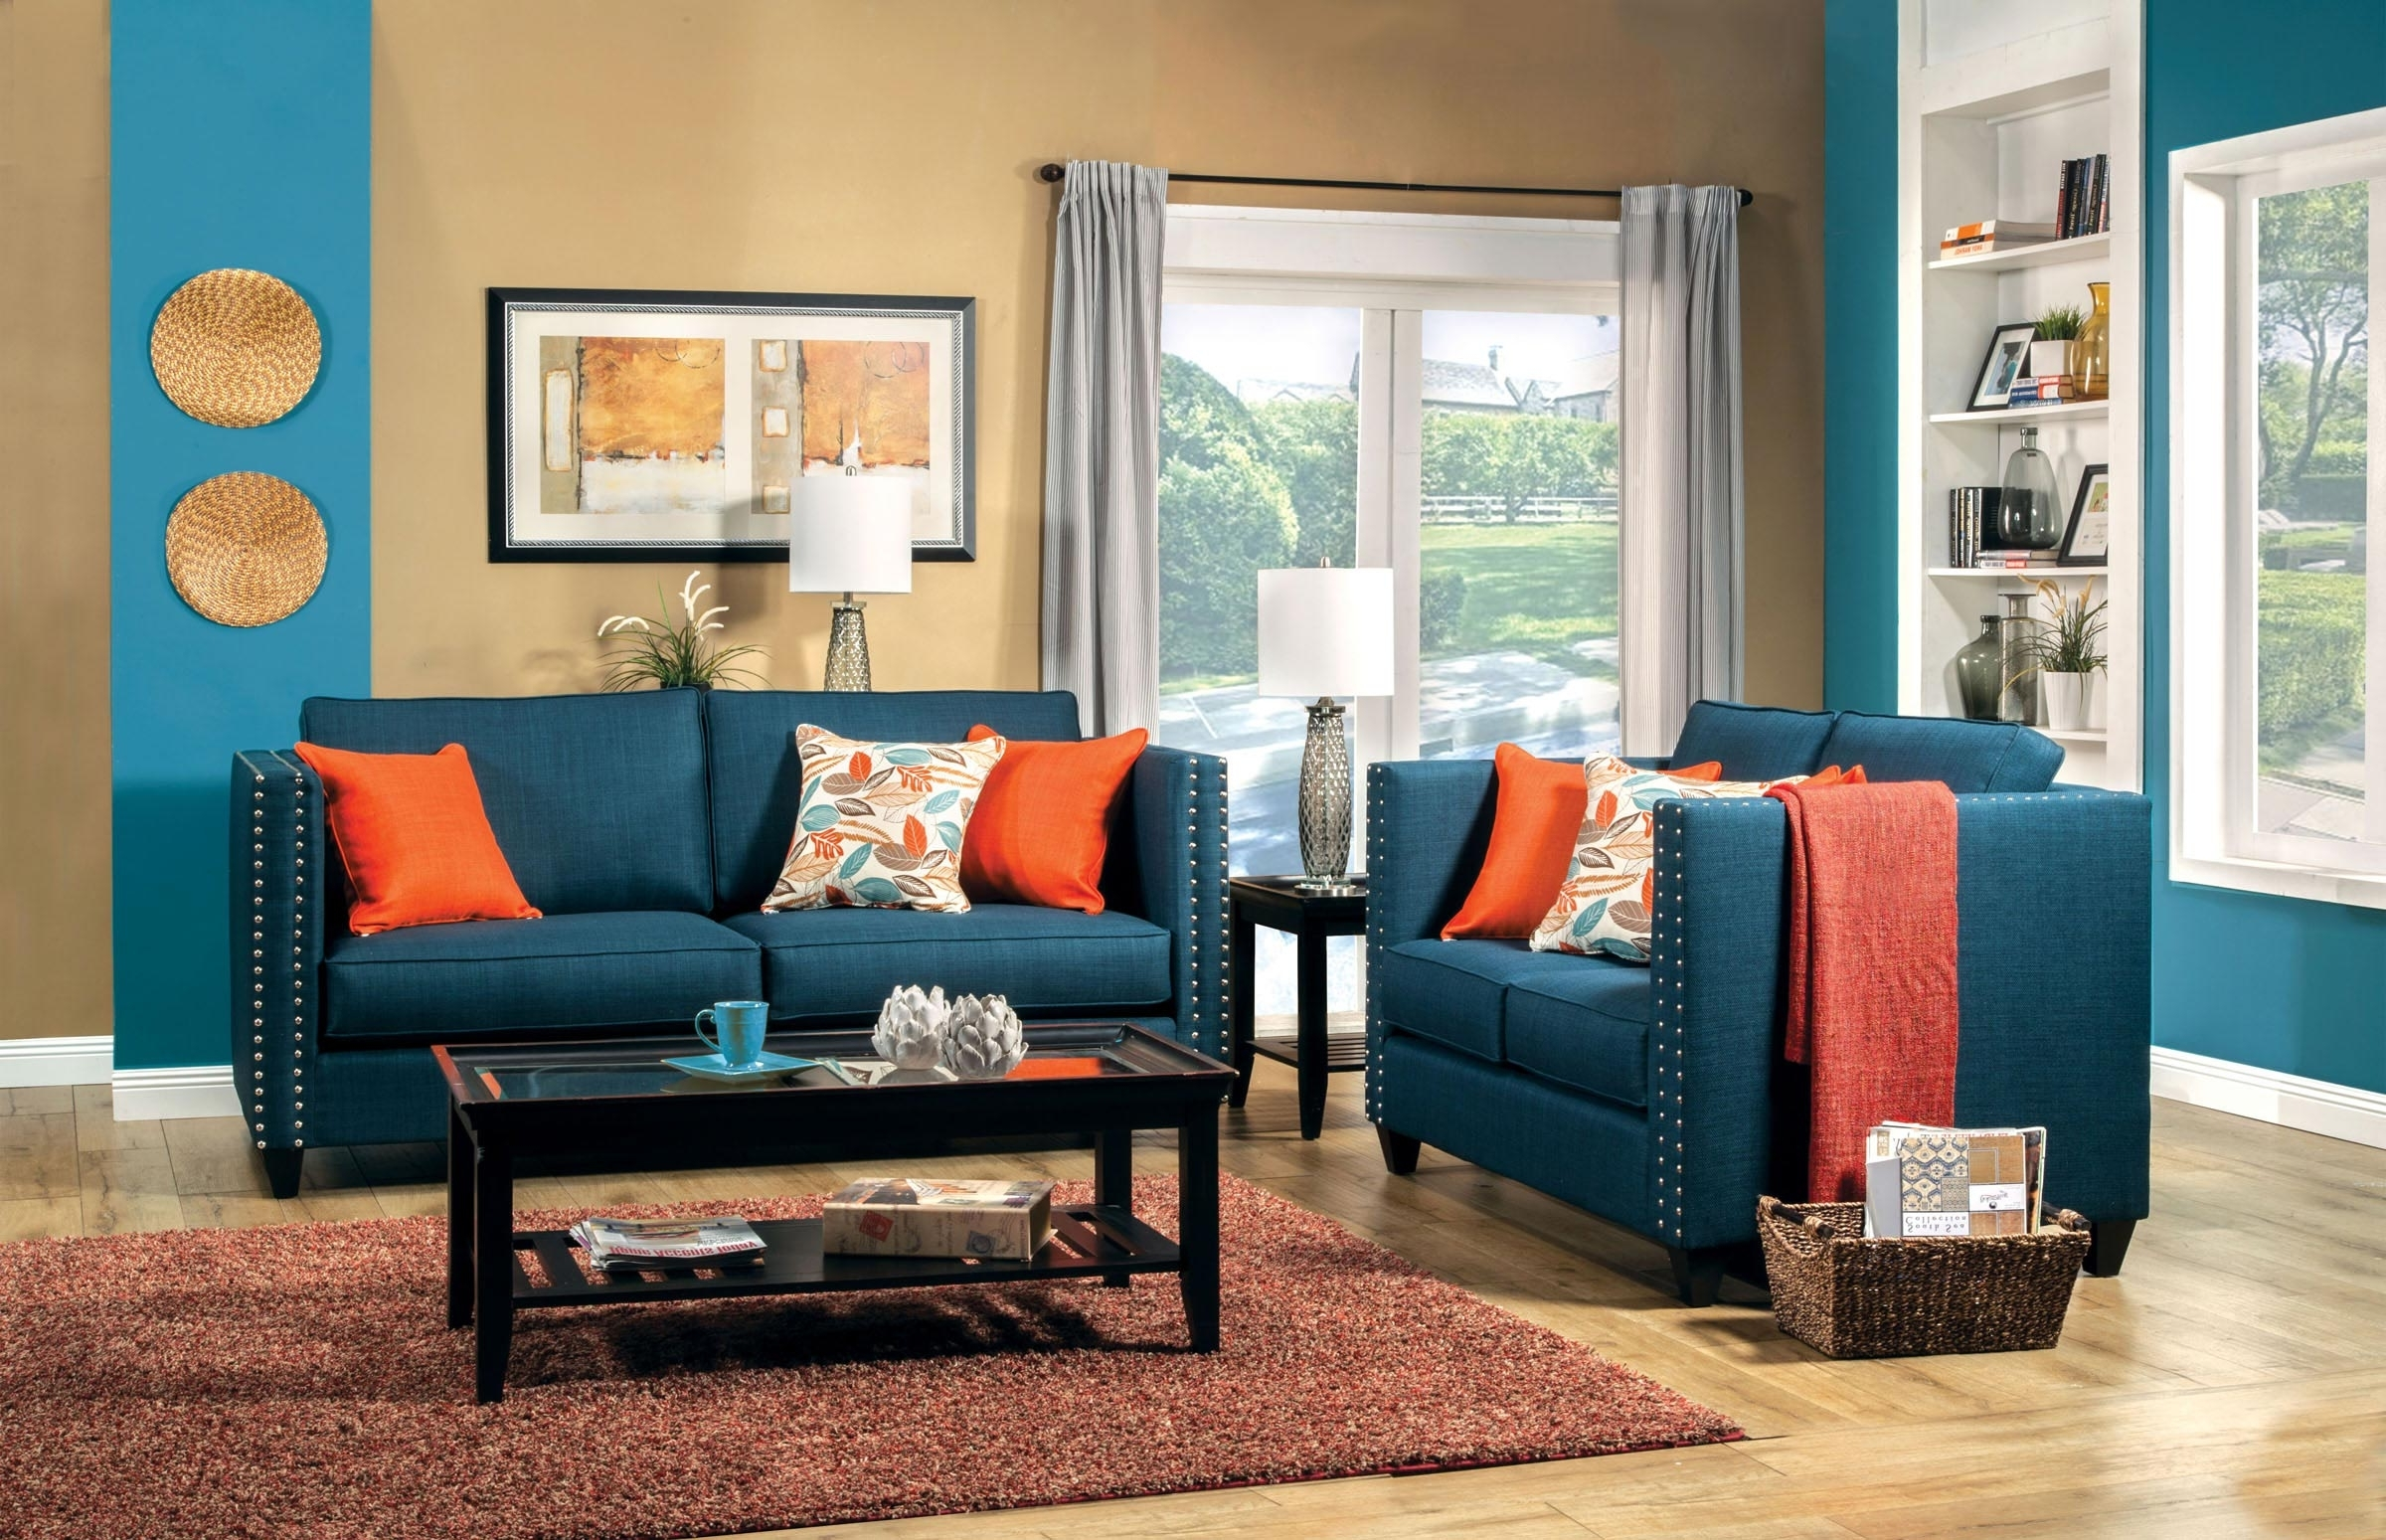 2 Pcs Turquoise Blue Sofa Set Throughout Popular Dark Blue Sofas (View 1 of 20)